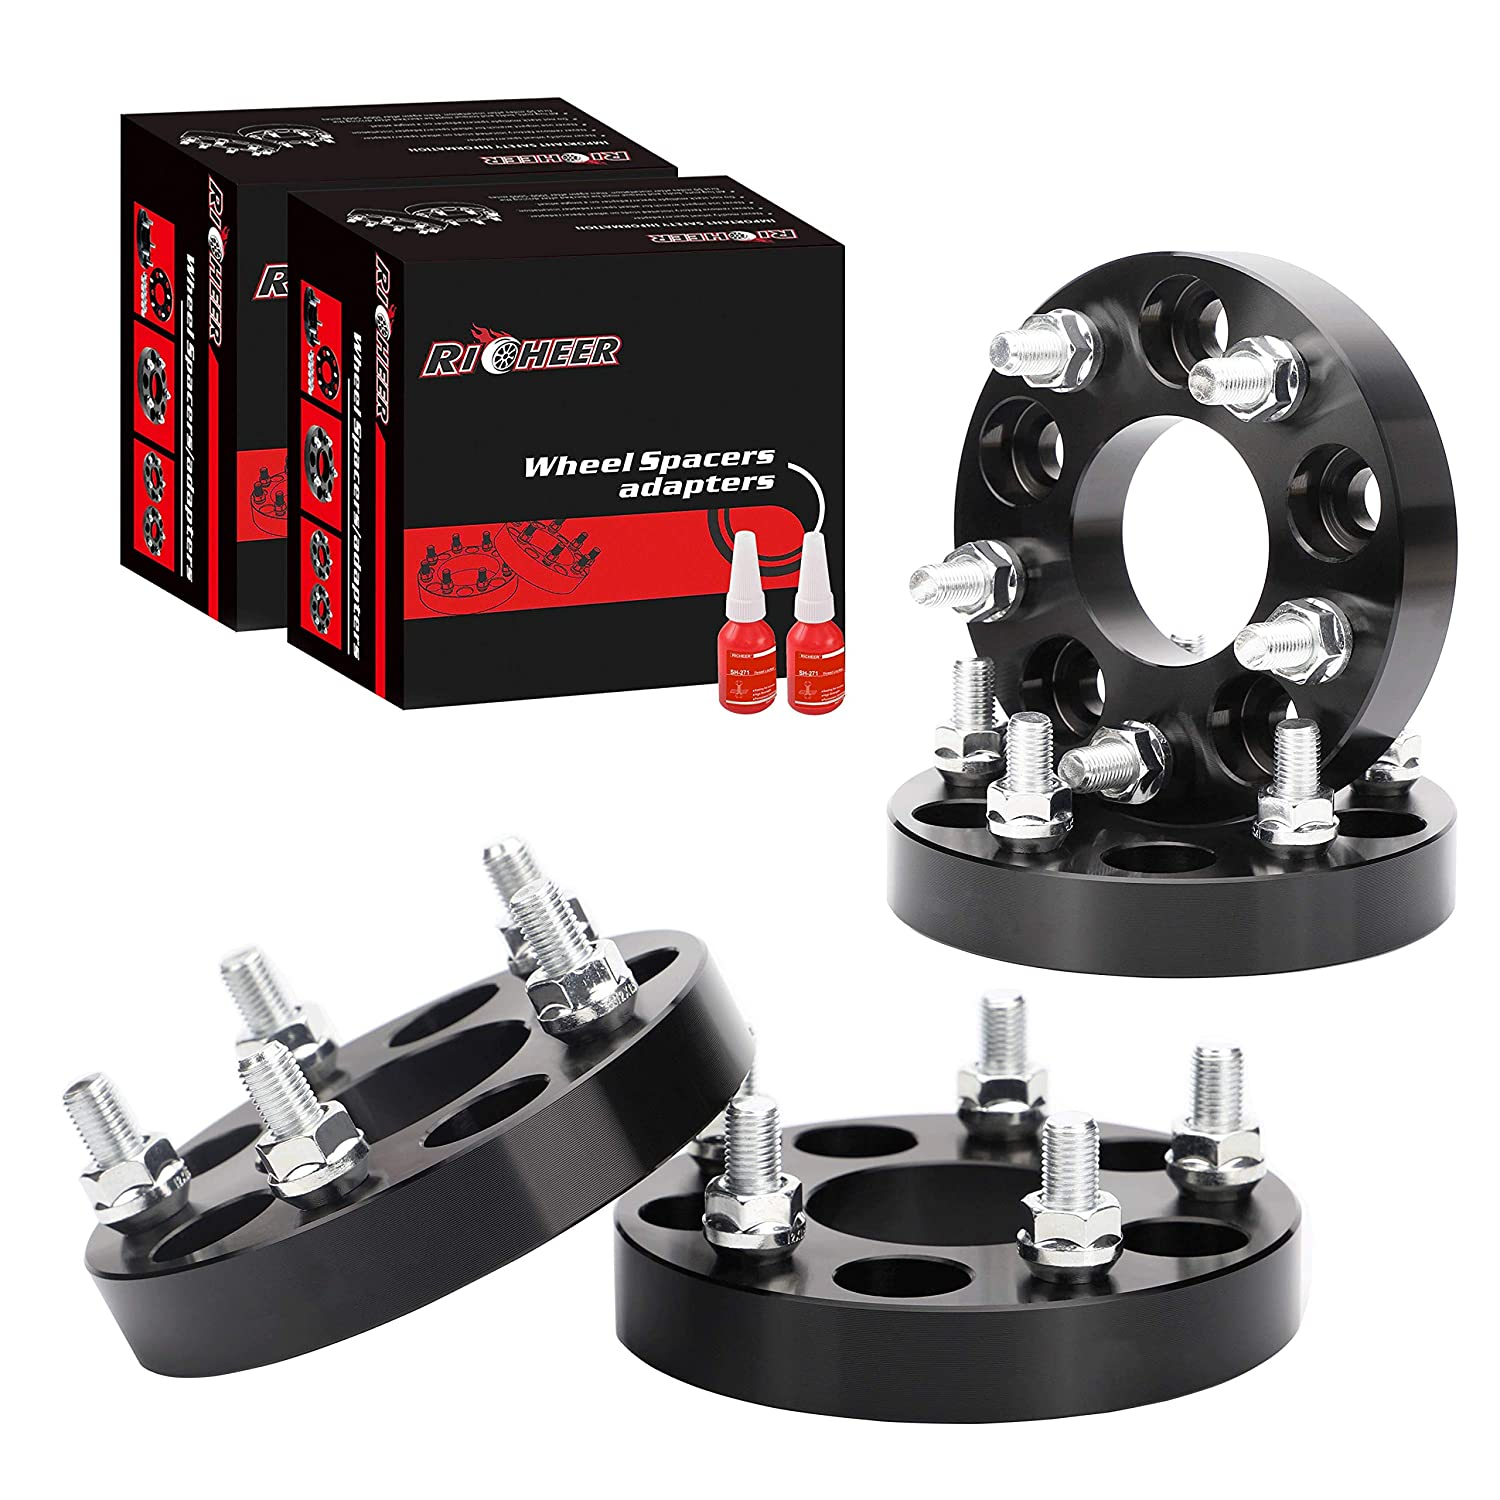 Ford Explore Mustang Ranger-82.5mm hub bore 1//2 Stud Richeer 4 PCS 1 Inch 5x4.5 Wheel Spacers for Jeep 5x114.3 Wheel Spacers for Jeep YJ TJ XJ KJ KK TY